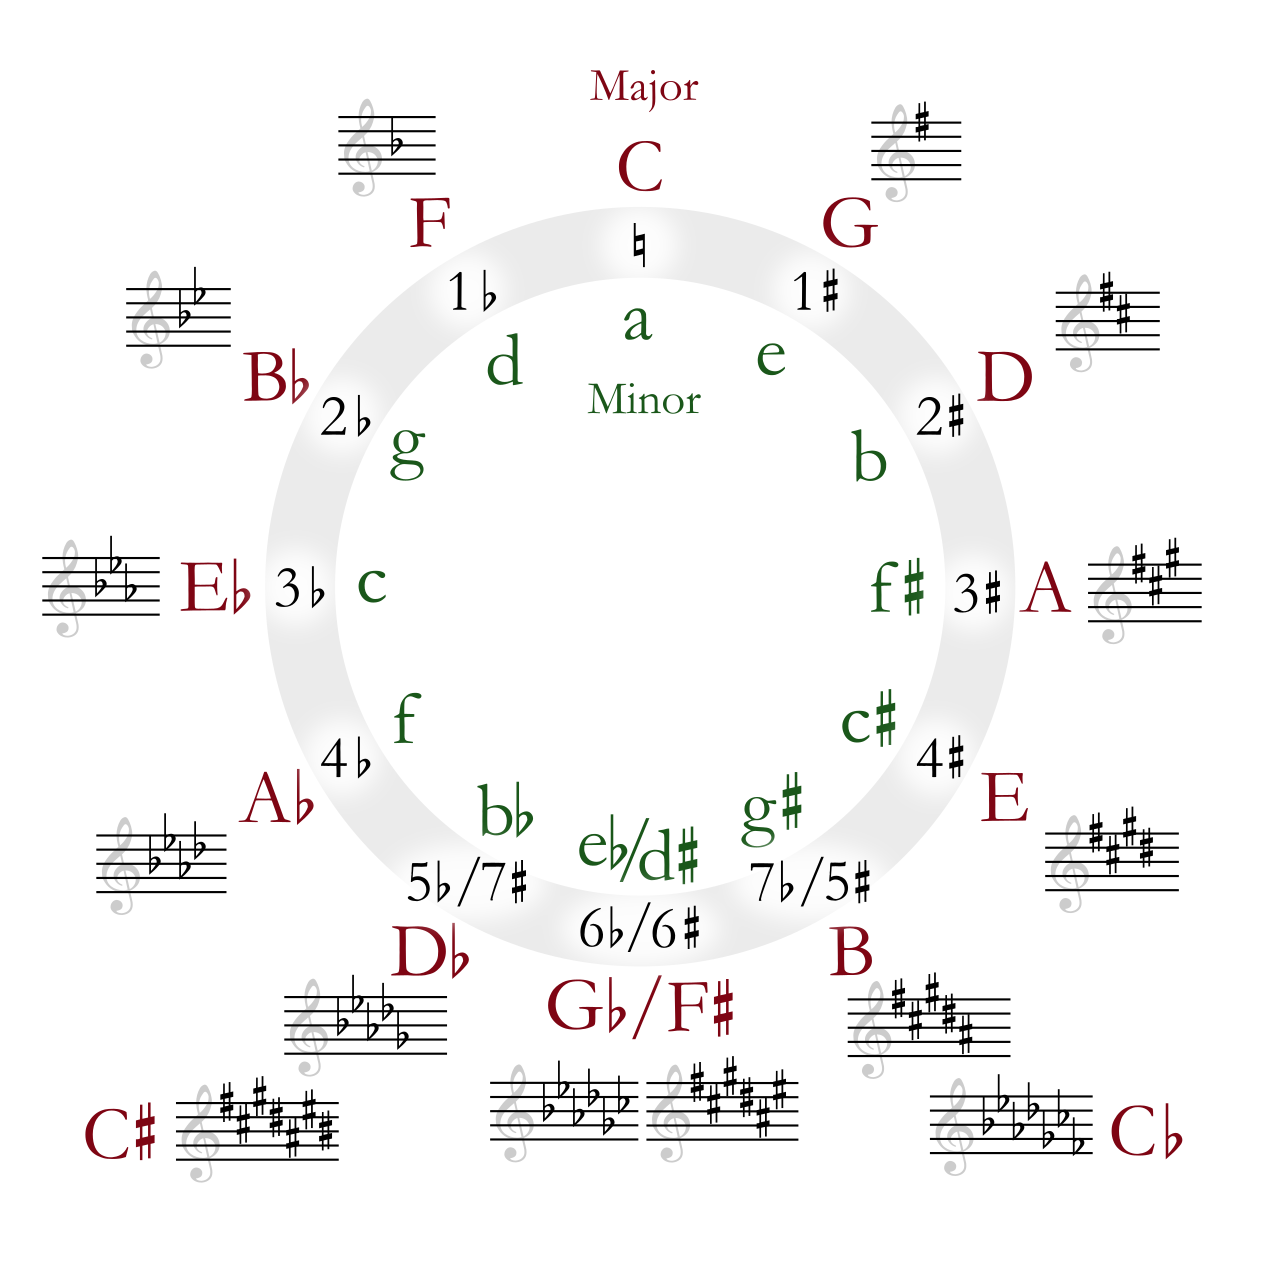 Circle Of Fifths Showing Major And Minor Keys And Their